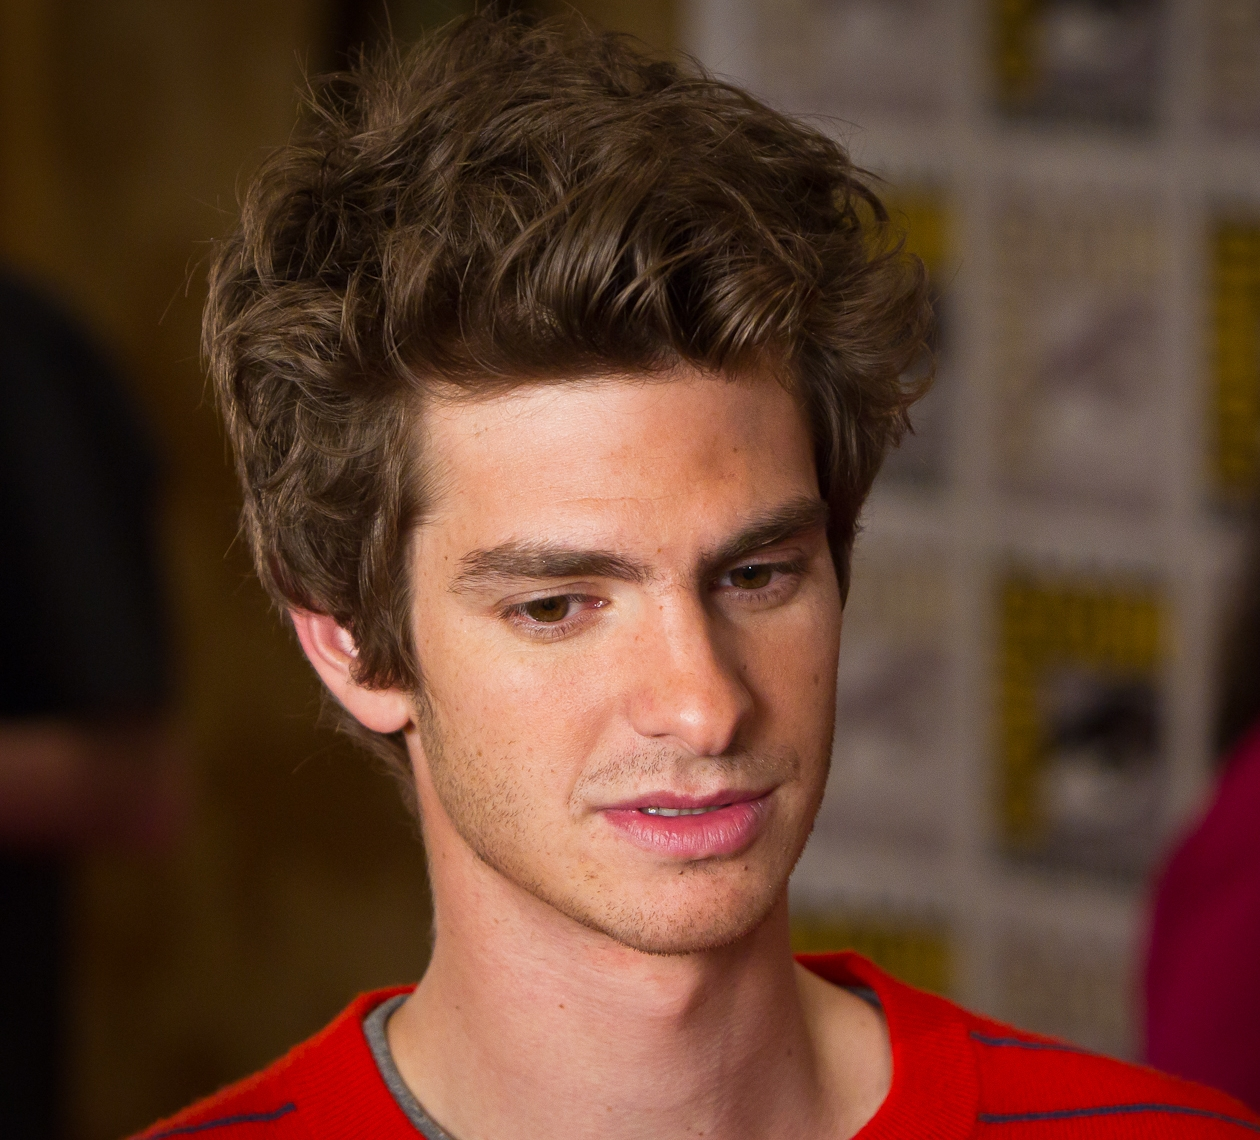 Top People - andrew garfield Andrew Garfield Wiki